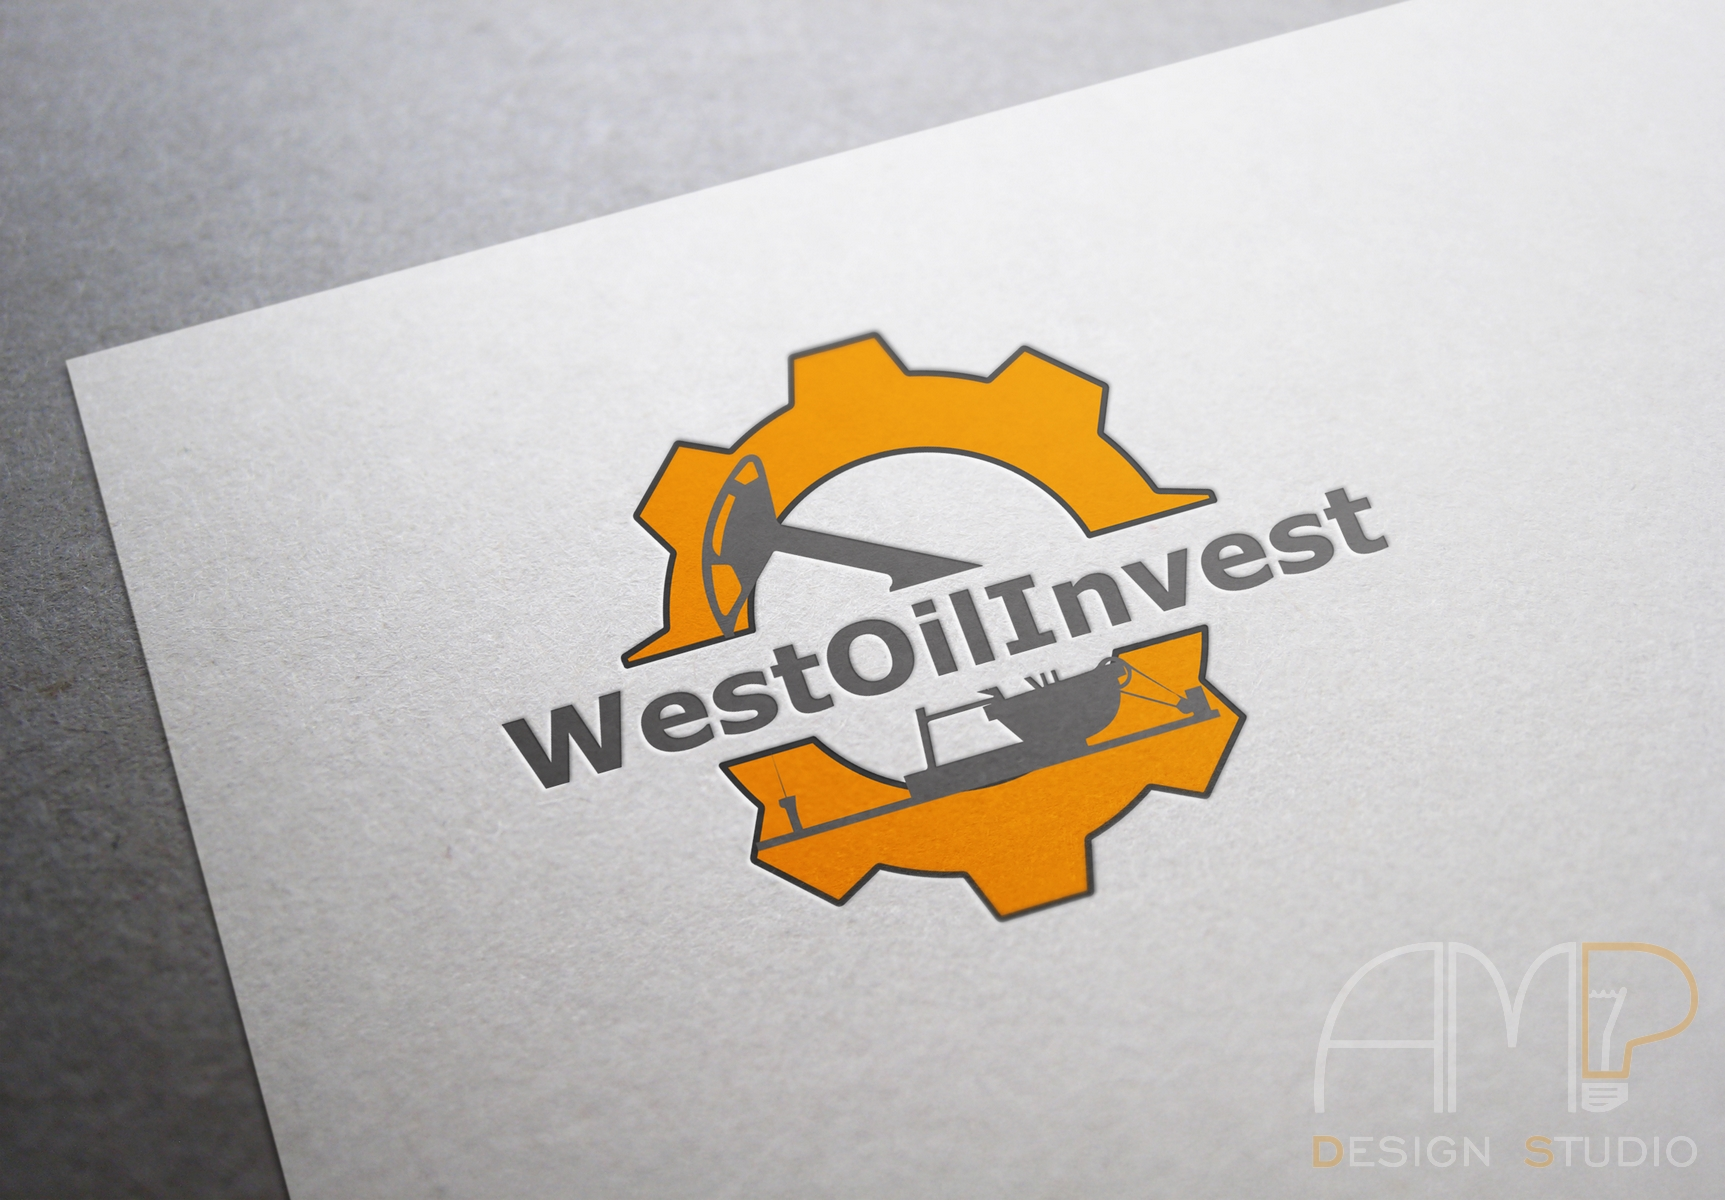 West oil invest logo 4